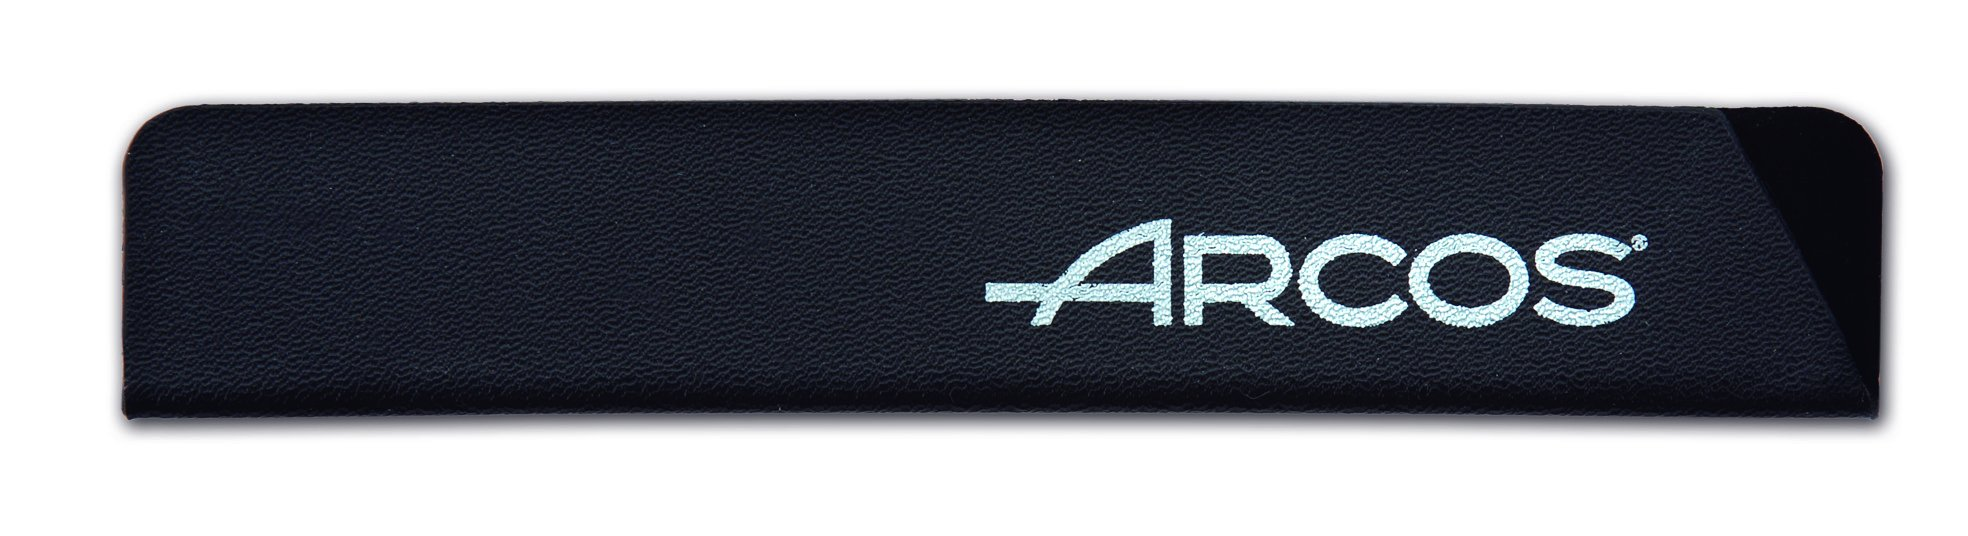 ARCOS Protective Blade Cover, 5 by 1-Inch